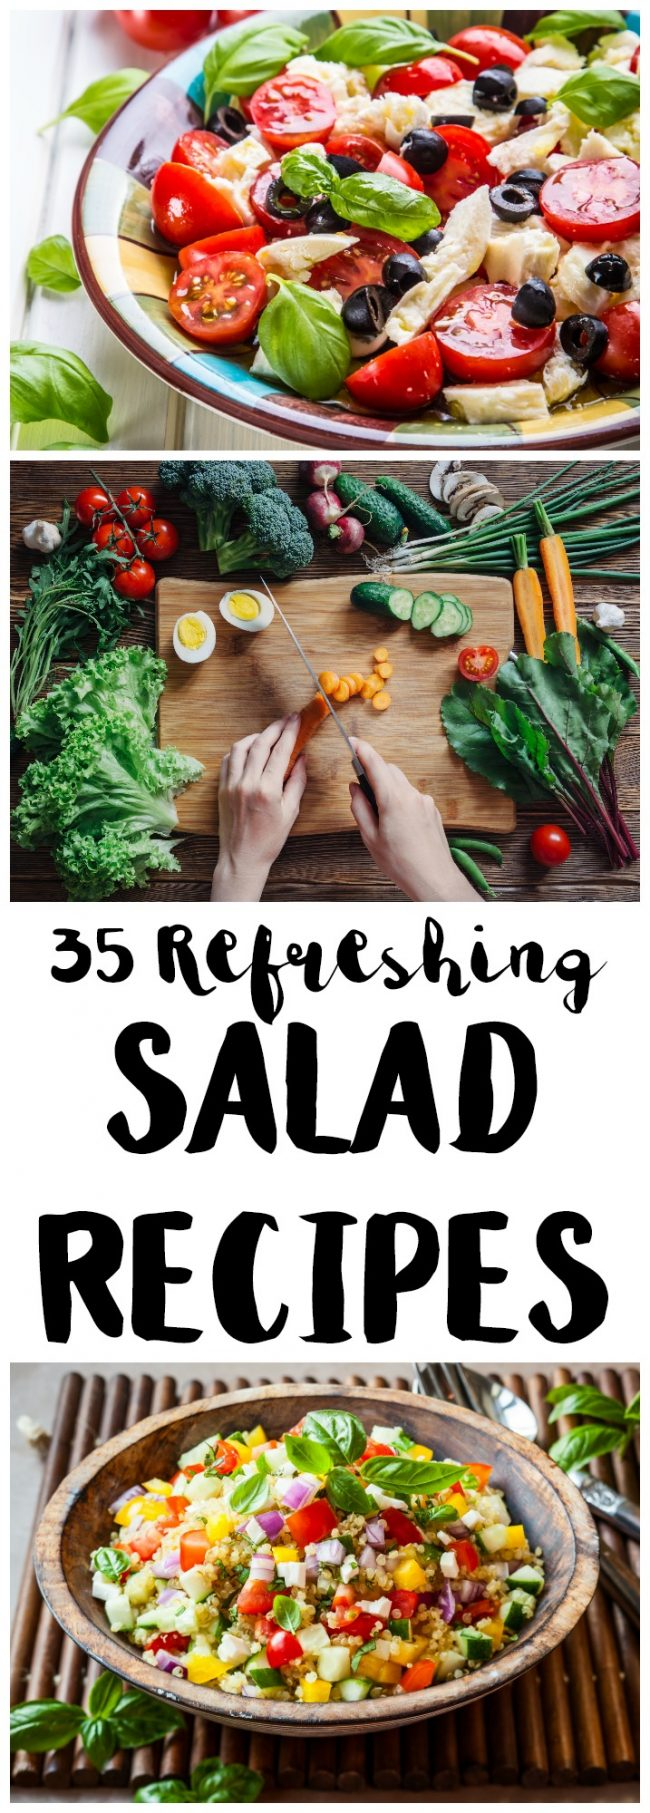 My favorite food in the summer is salads! They are light, easy, and healthy and just taste so good. They are also easy to customize, as evidenced by these 35 refreshing salad recipes! These salads are filling enough to eat for dinner and range from a simple chopped cobb salad to various chicken and pasta salads to anything else green you could think of!